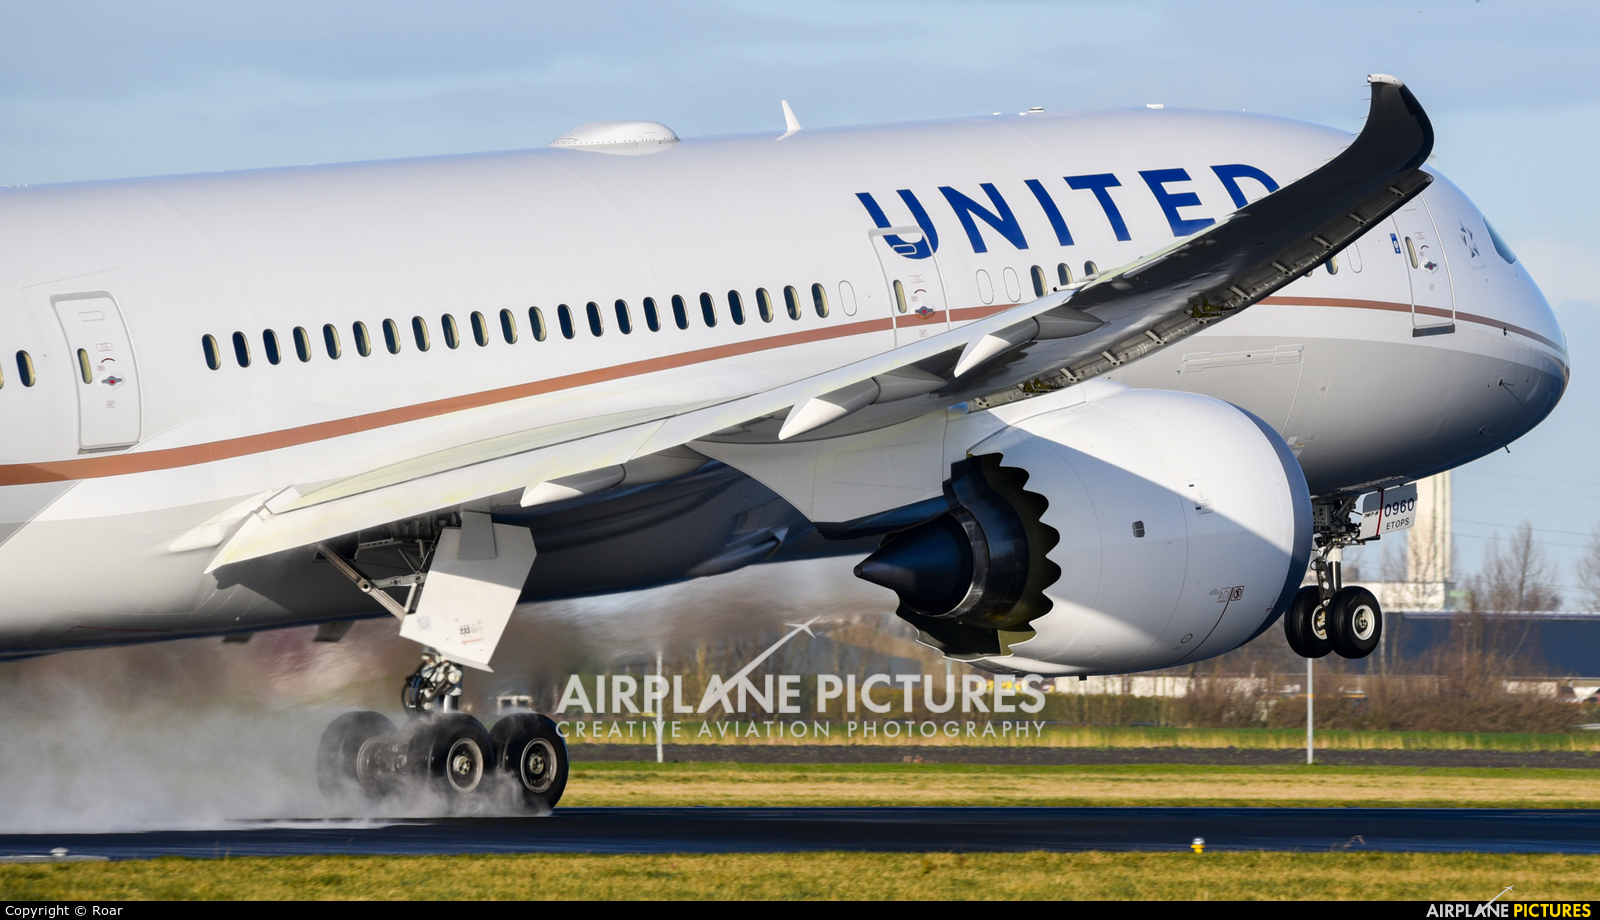 United Airlines N26960 aircraft at Amsterdam - Schiphol